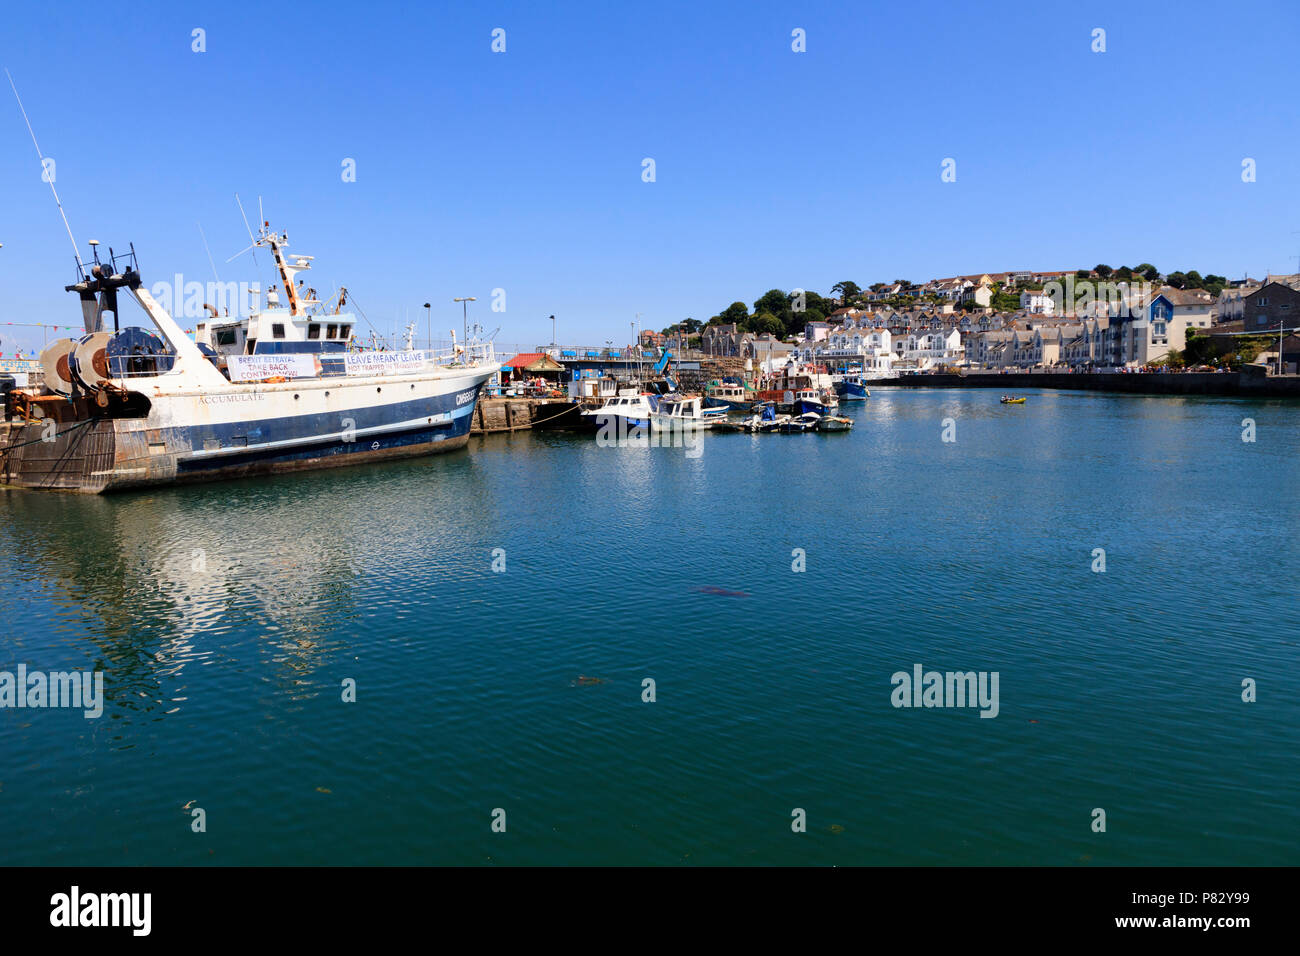 Offshore trawler Accumulate carrying Brexit fisheries protest banners in Brixham harbour, Devon, UK - Stock Image